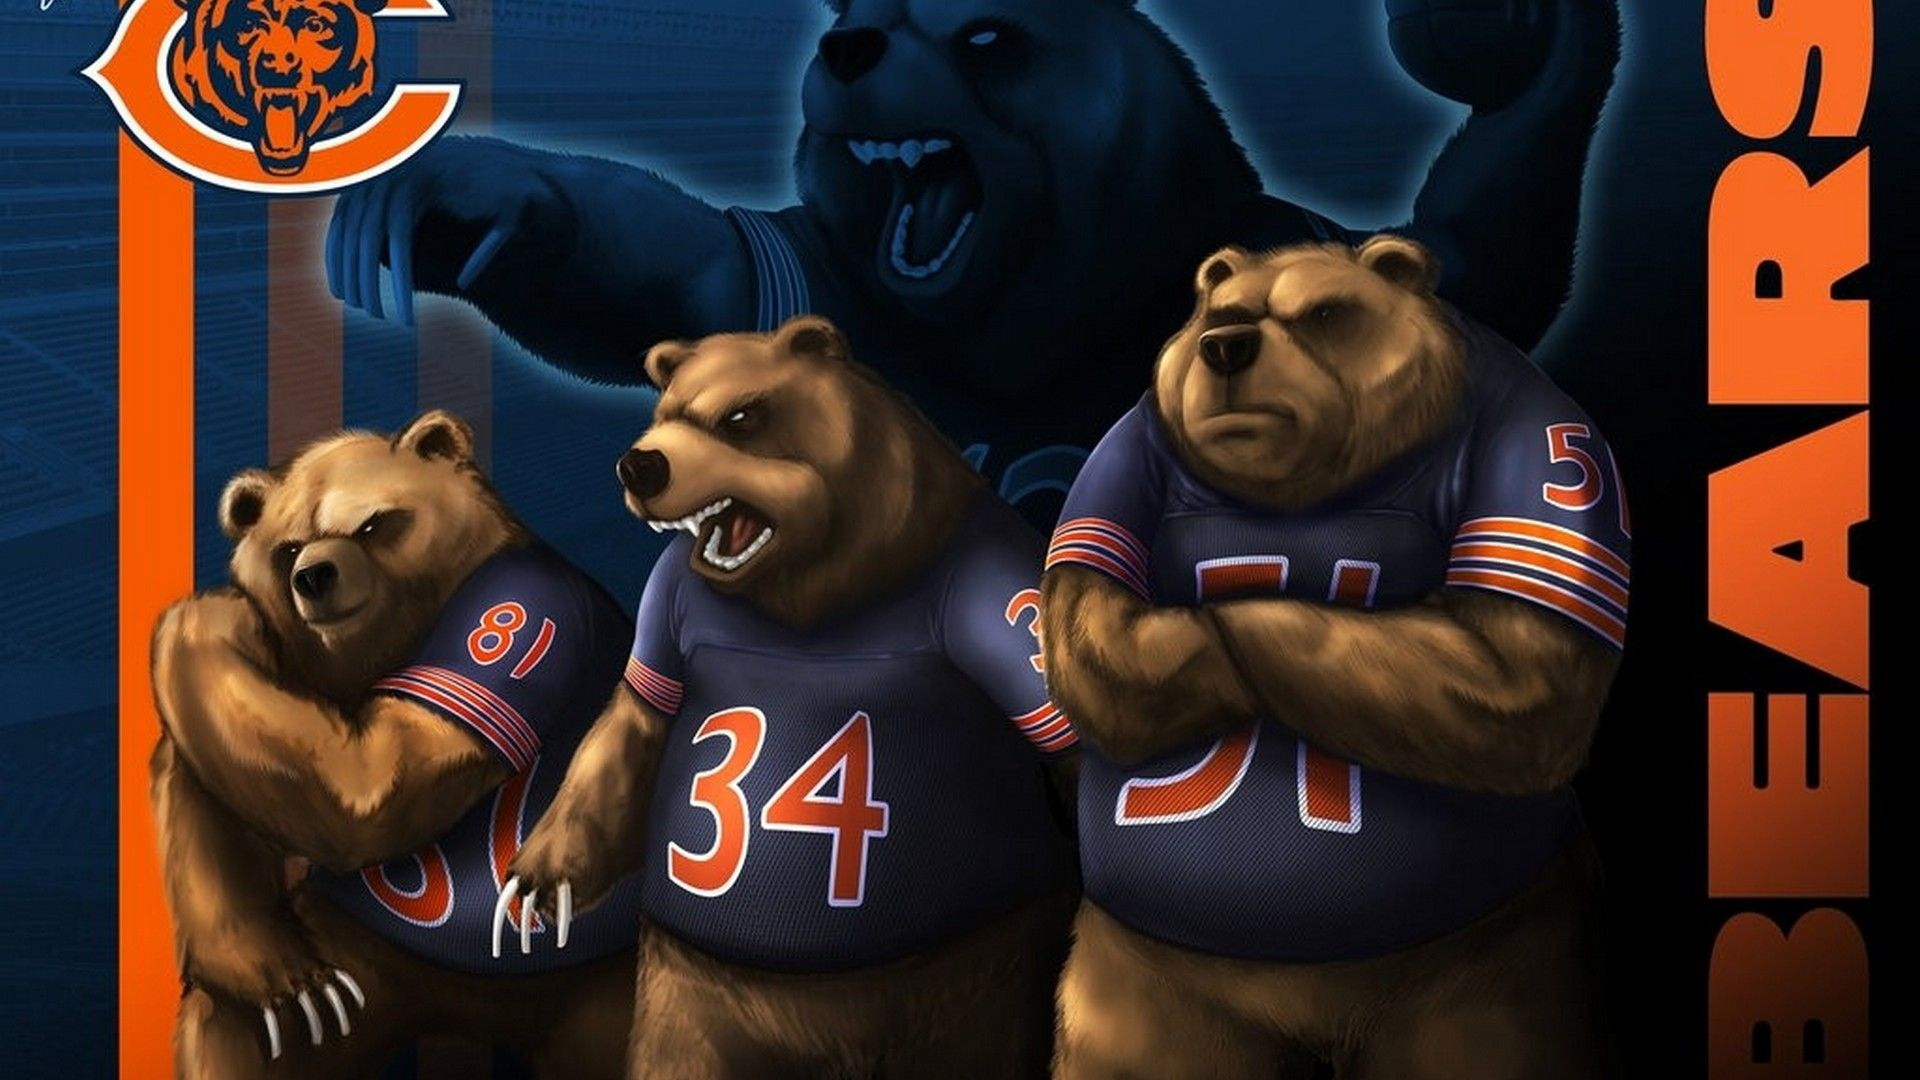 HD Backgrounds Chicago Bears Chicago bears, Chicago